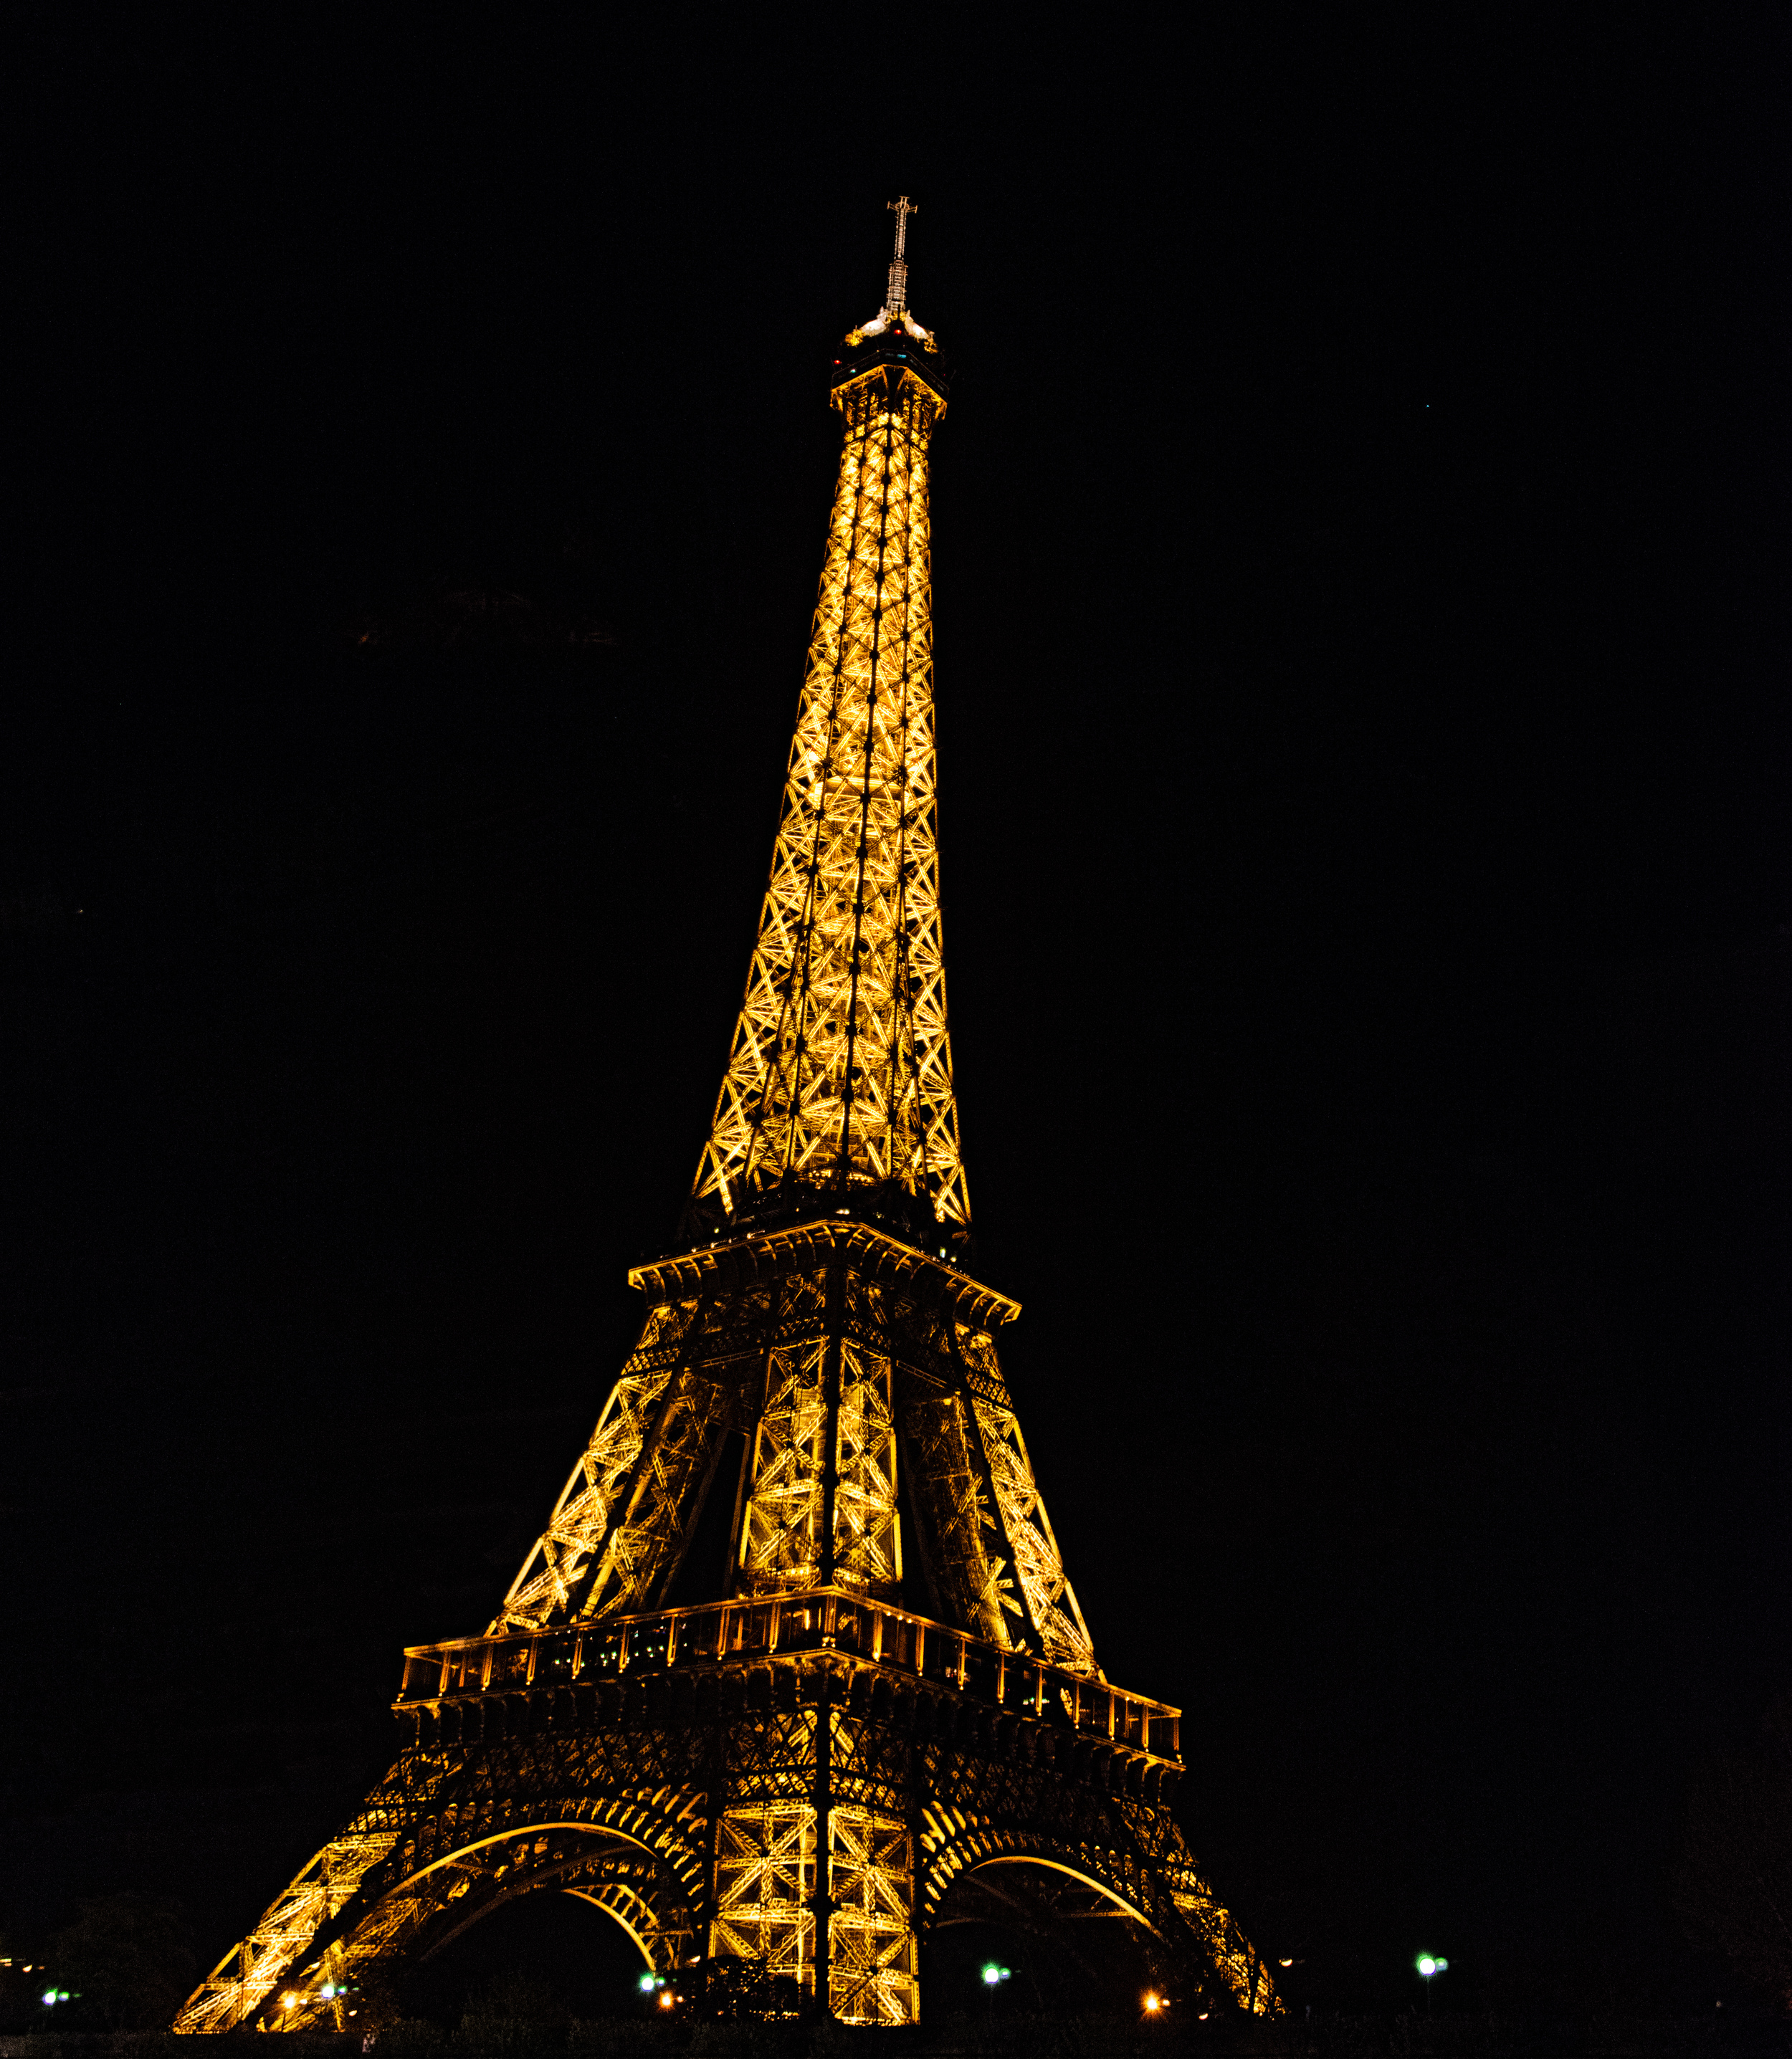 The Eiffle Tower at night from the Seine River